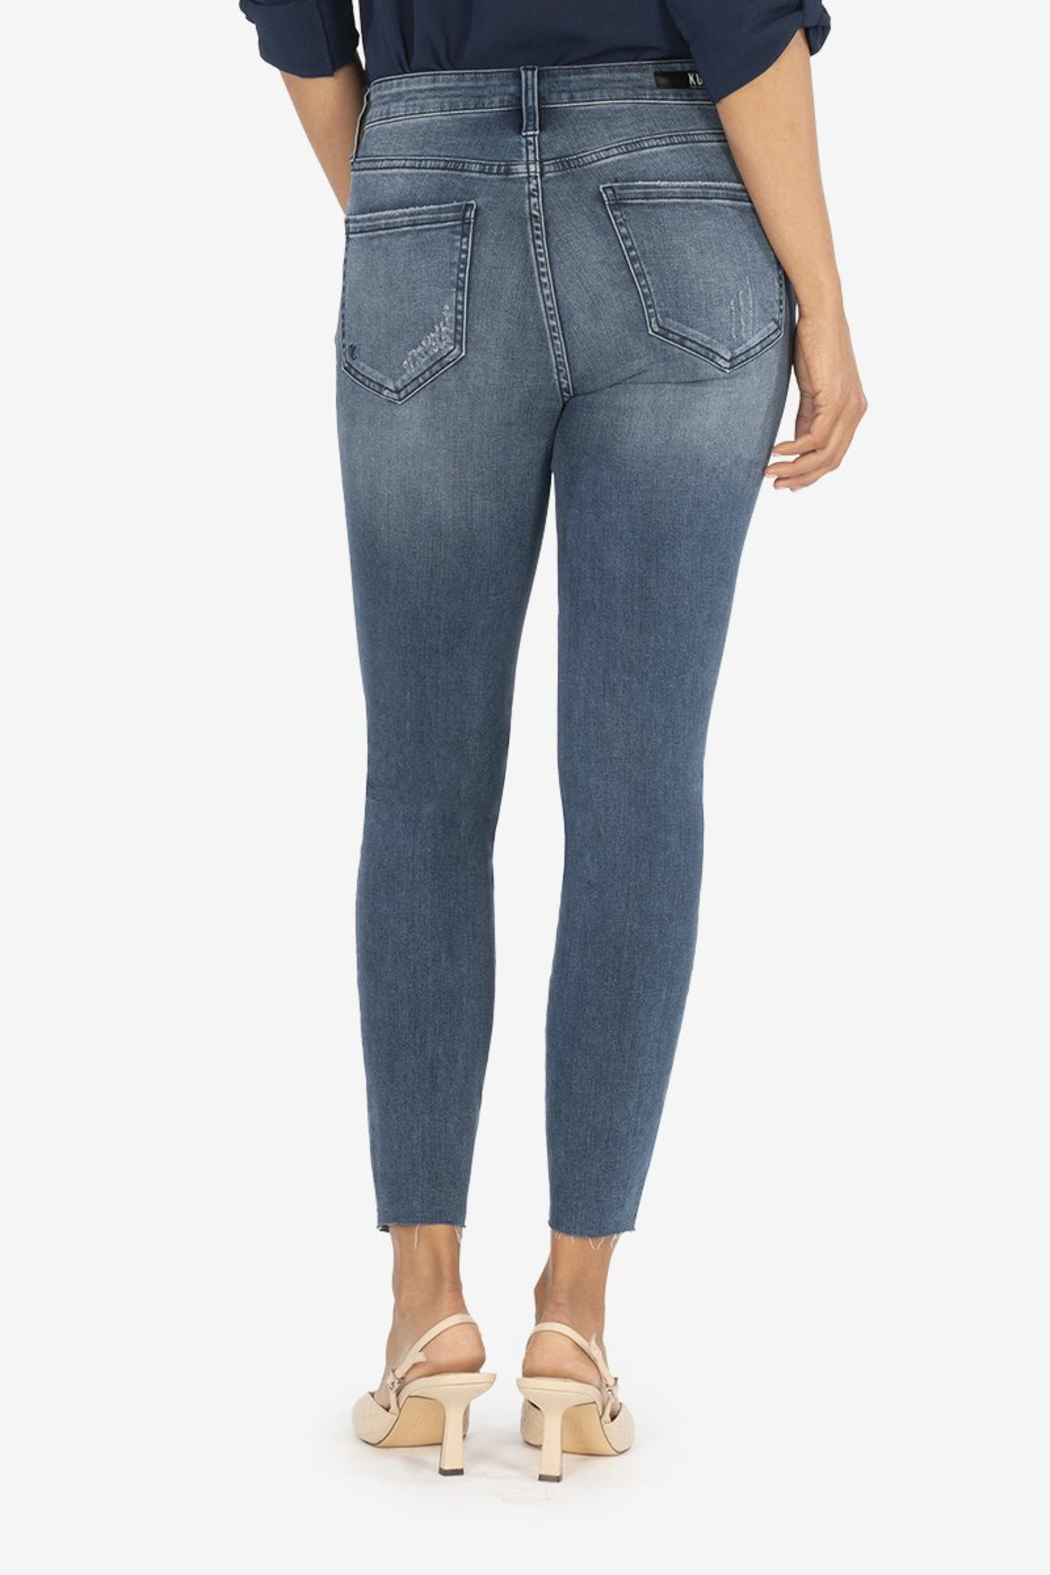 KUT CONNIE H/R ANKLE SKINNY - Side Cropped Image